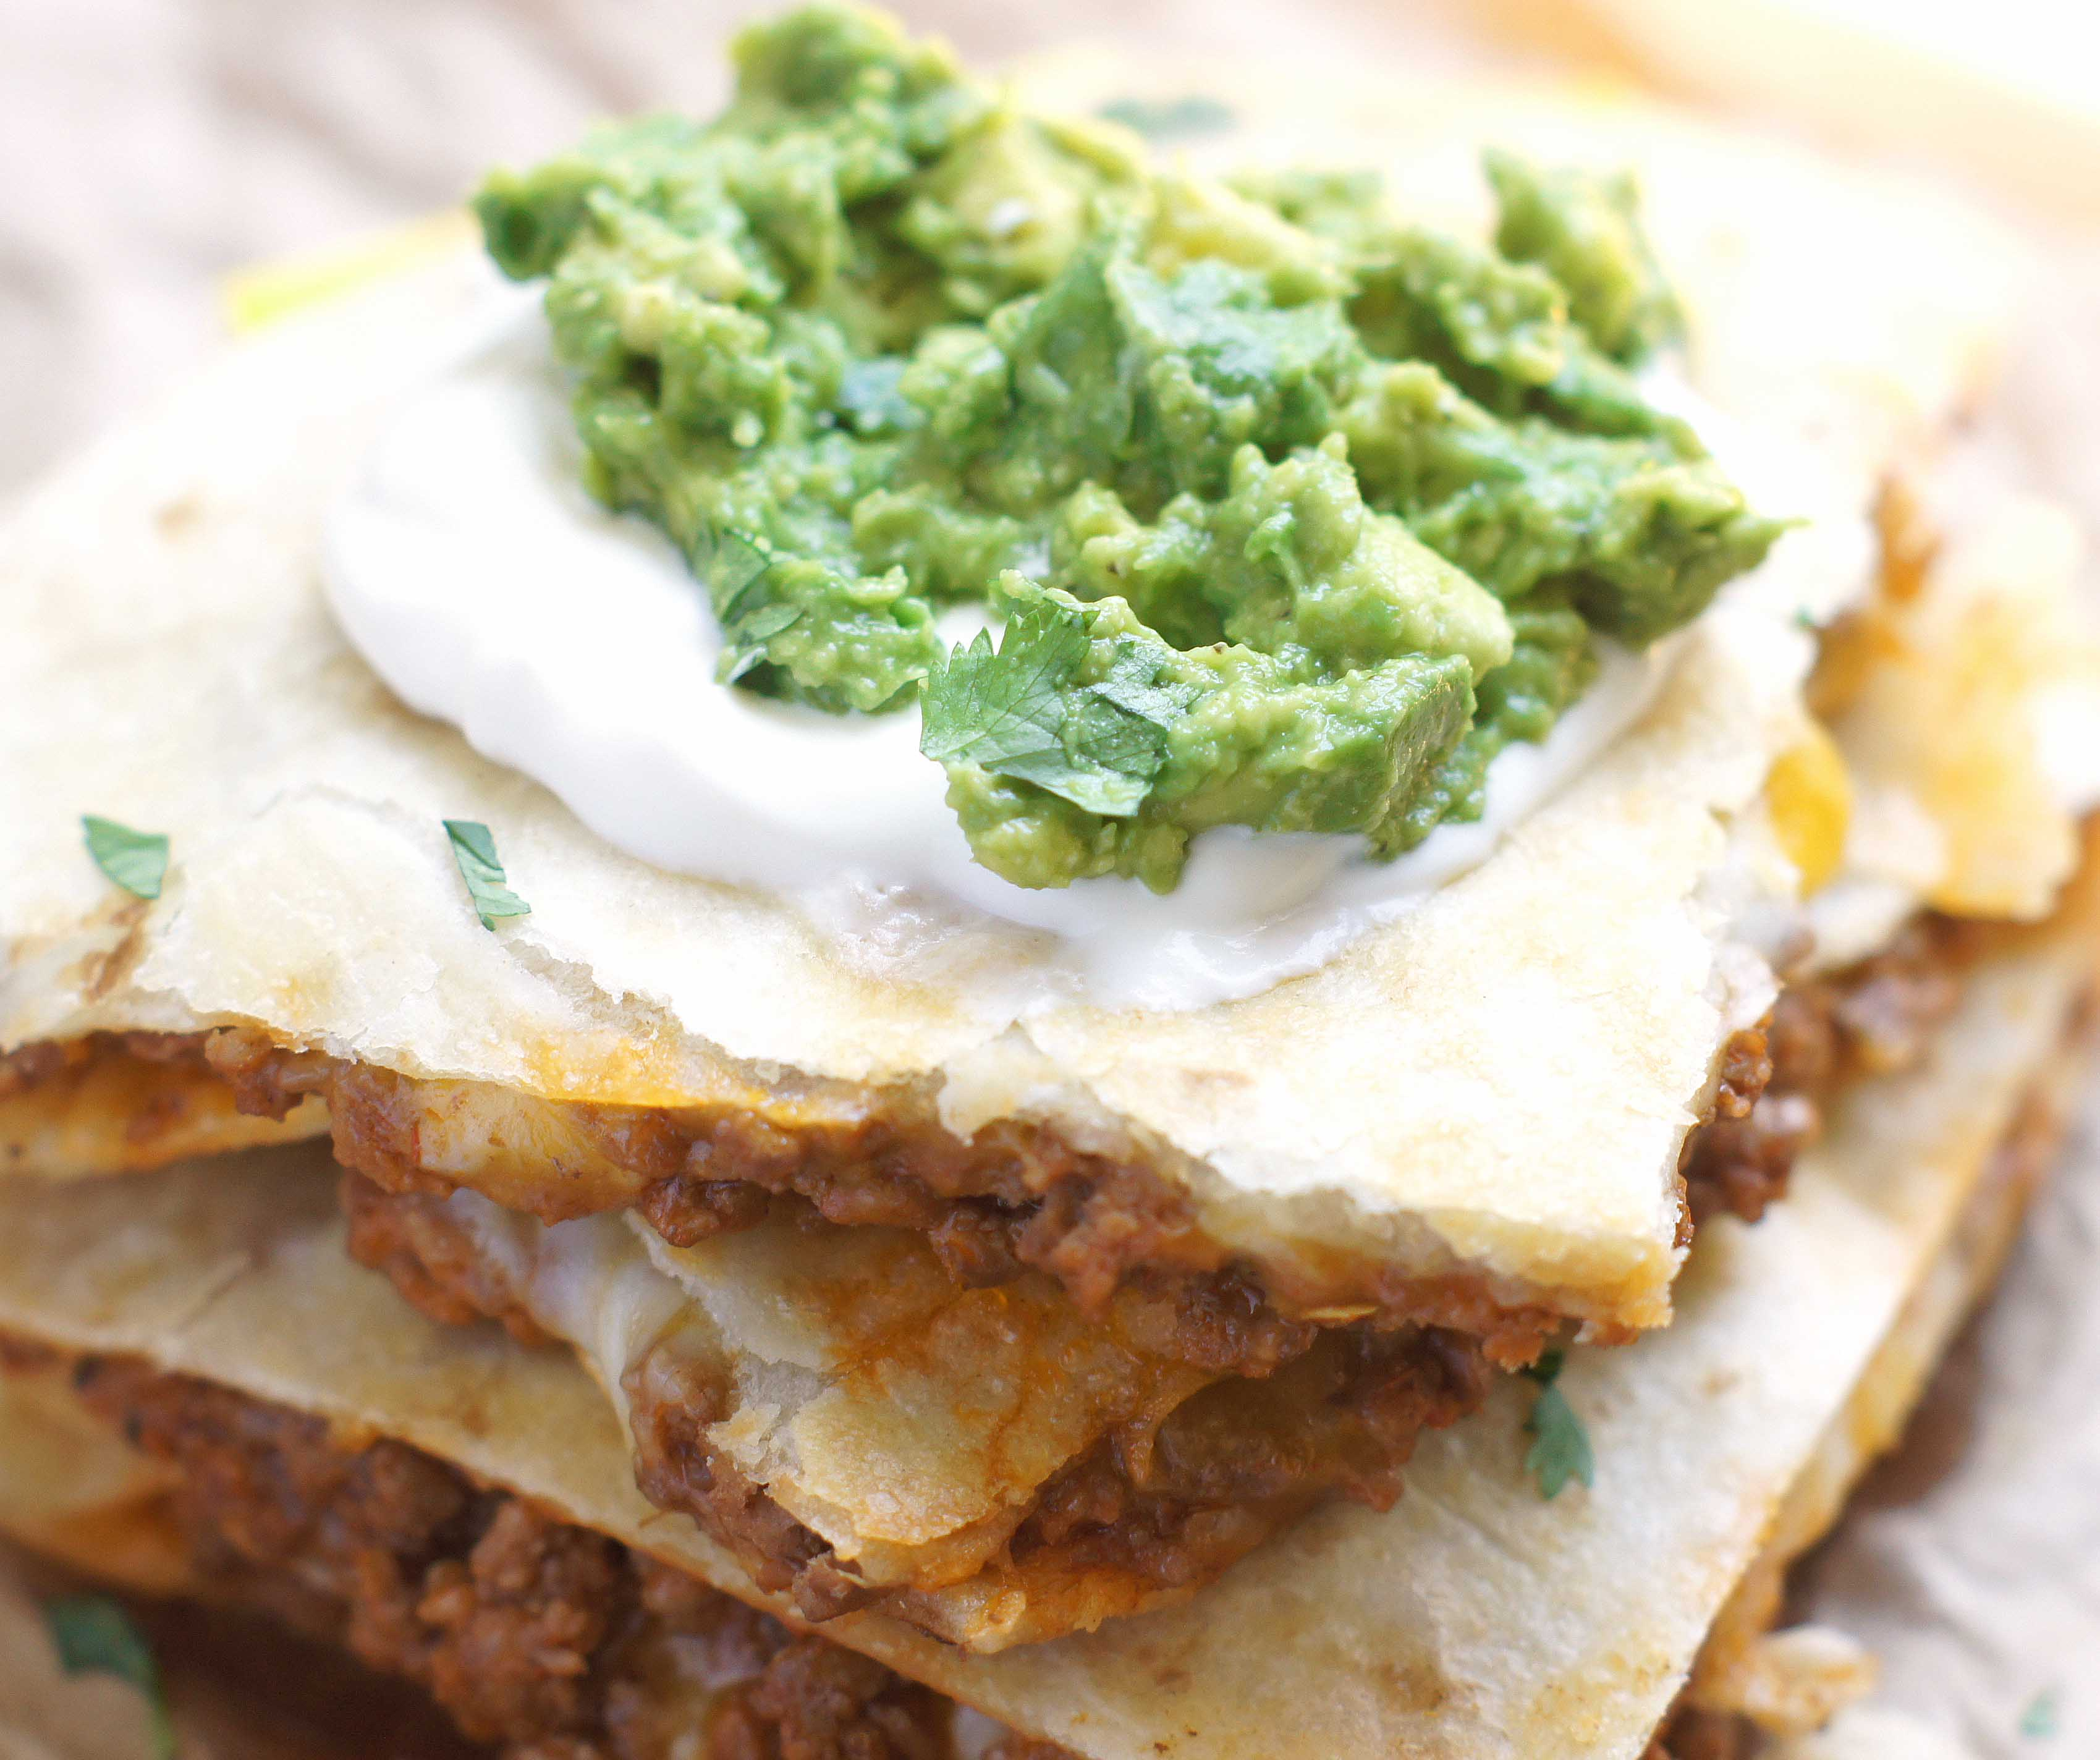 Cheesy ground beef quesadillas 5 boys baker cheesy ground beef quesadillas forumfinder Gallery